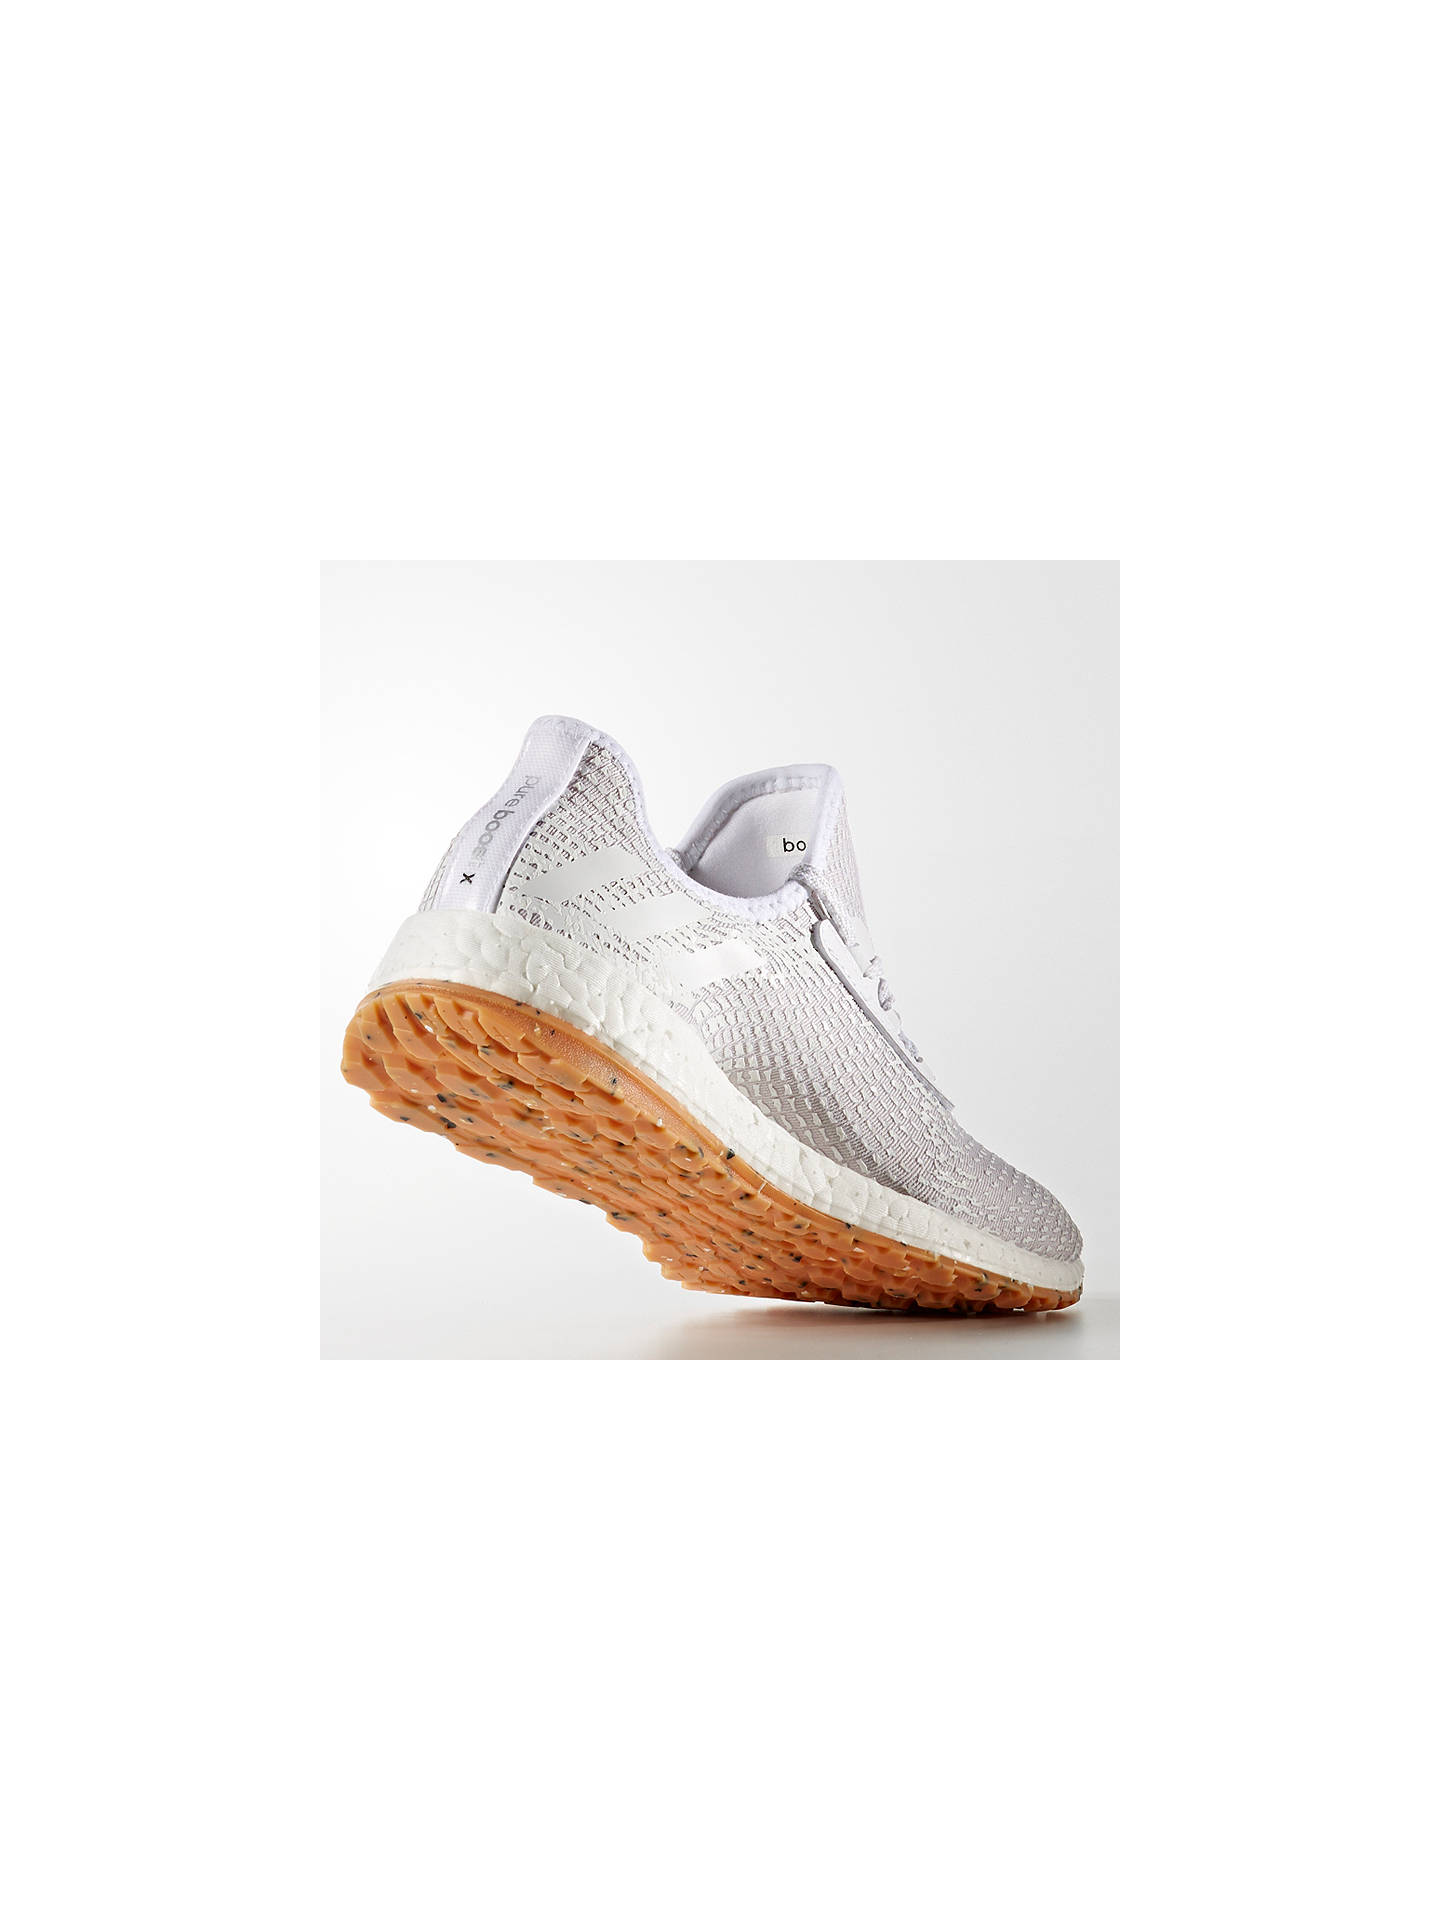 dfe64f4e4477e ... new style buyadidas pureboost all terrain womens running shoes crystal  white pearl grey 4 5ec4b 4929a new zealand womens adidas pure boost x ...